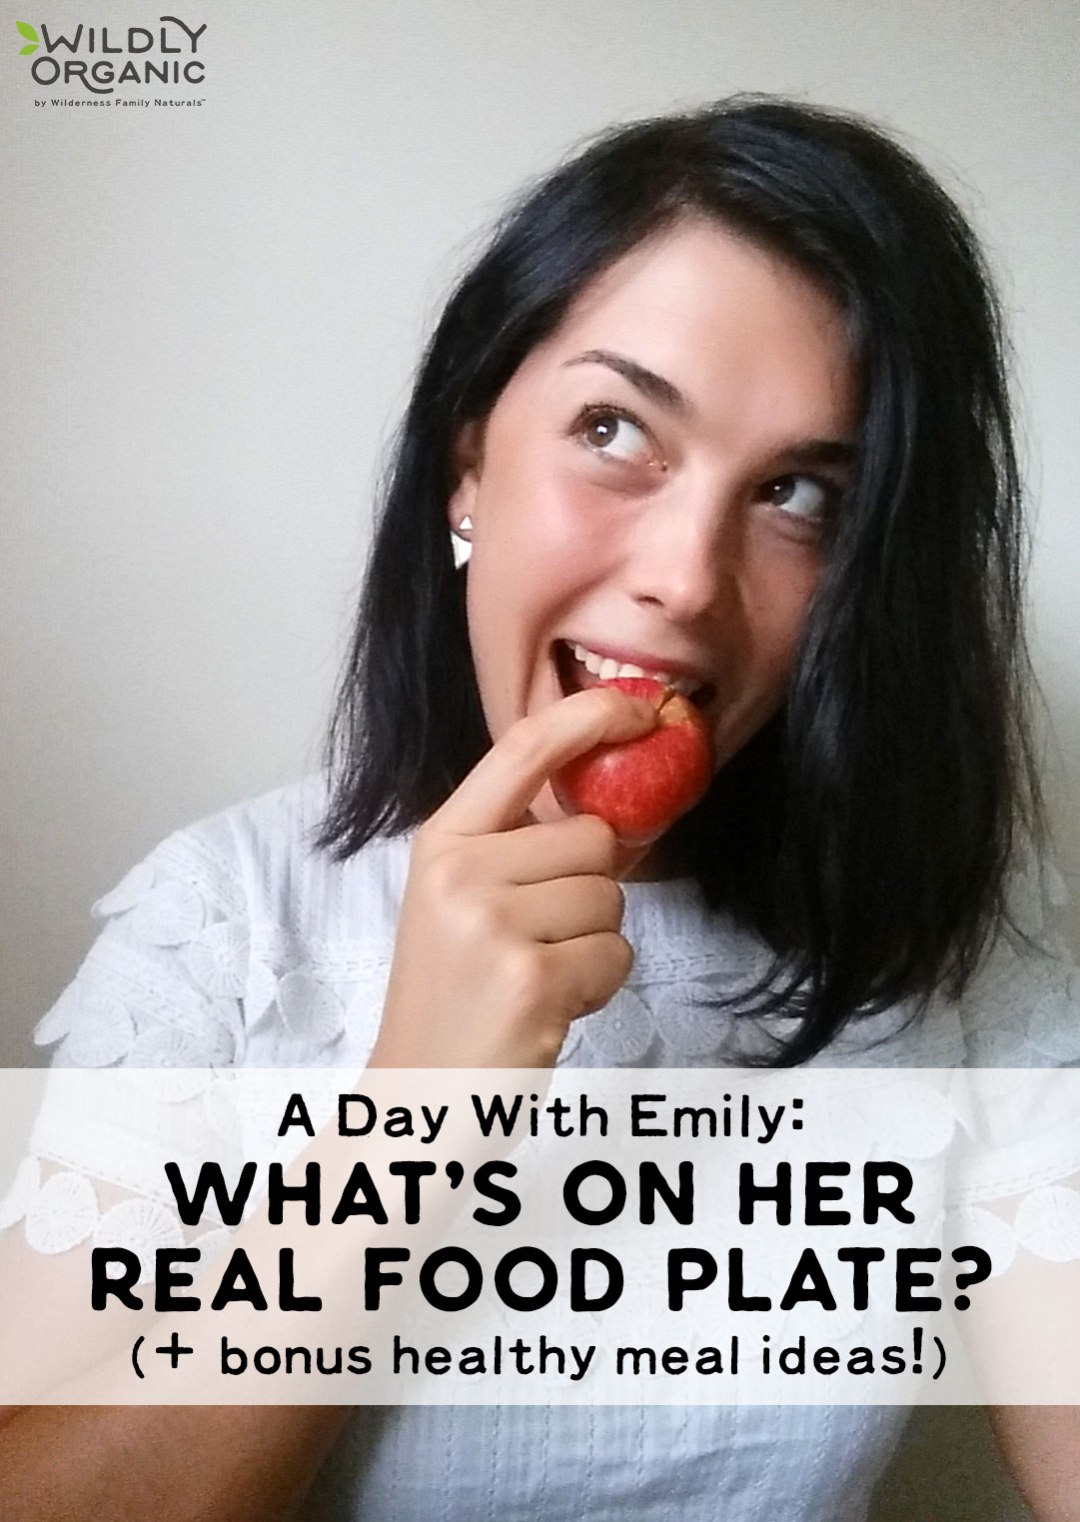 Wildly Organic blog writer Emily lets us peek into a day with her and what's on her Real Food plate! Learn her story to healthy eating, plus get her bonus healthy (and easy!) meal ideas to keep you eating Real Food with less effort.